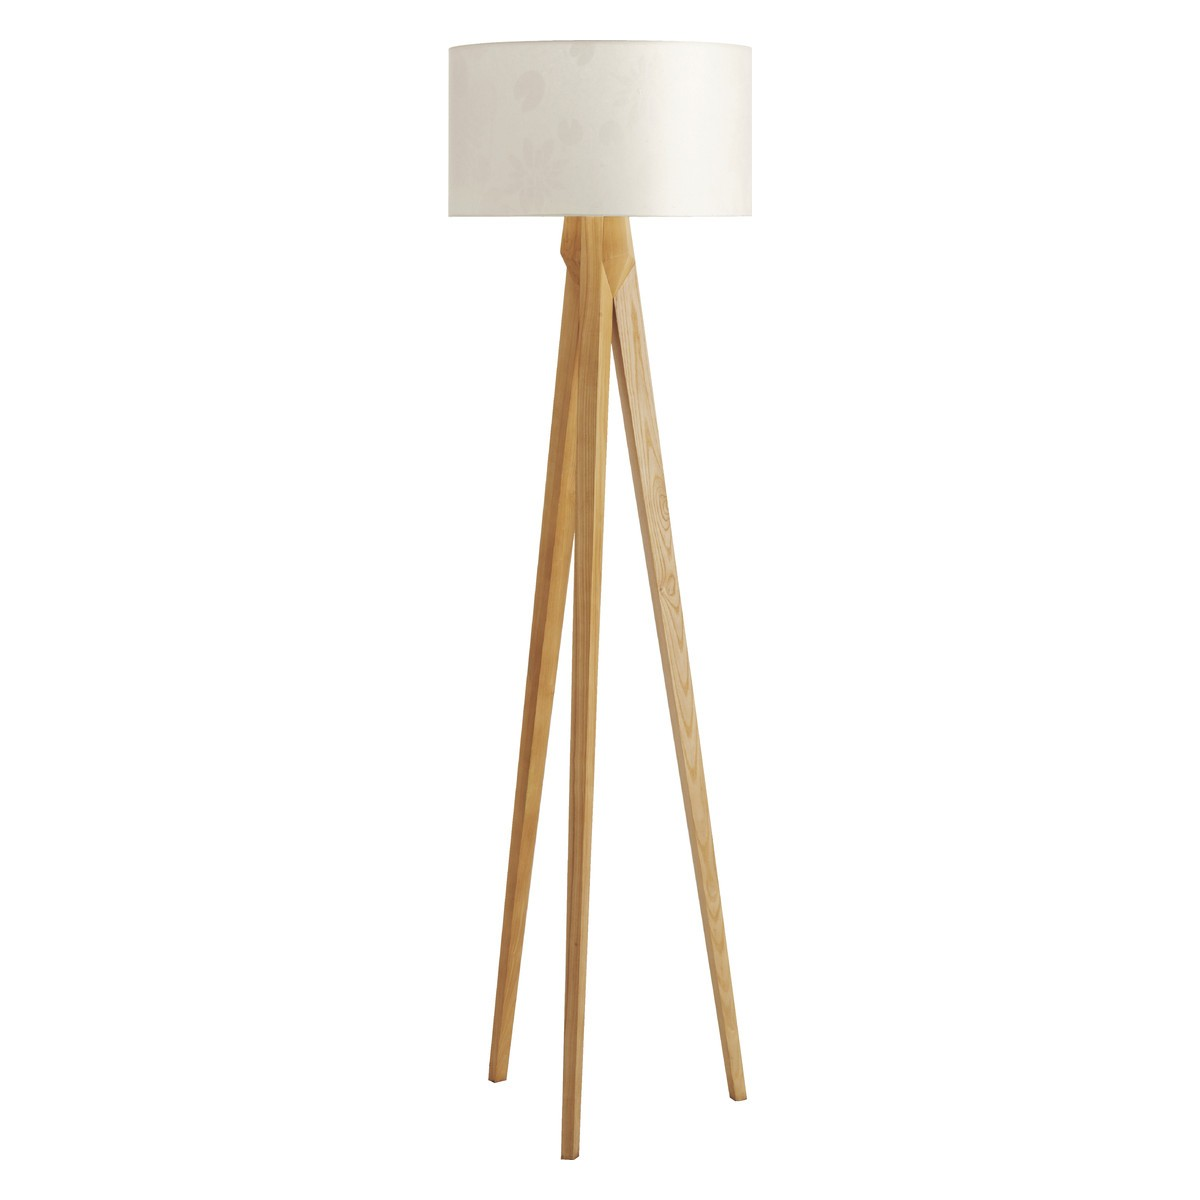 Care Instructions. Wipe clean with a dry cloth. TRIPOD OAK Wooden floor lamp  with white shade